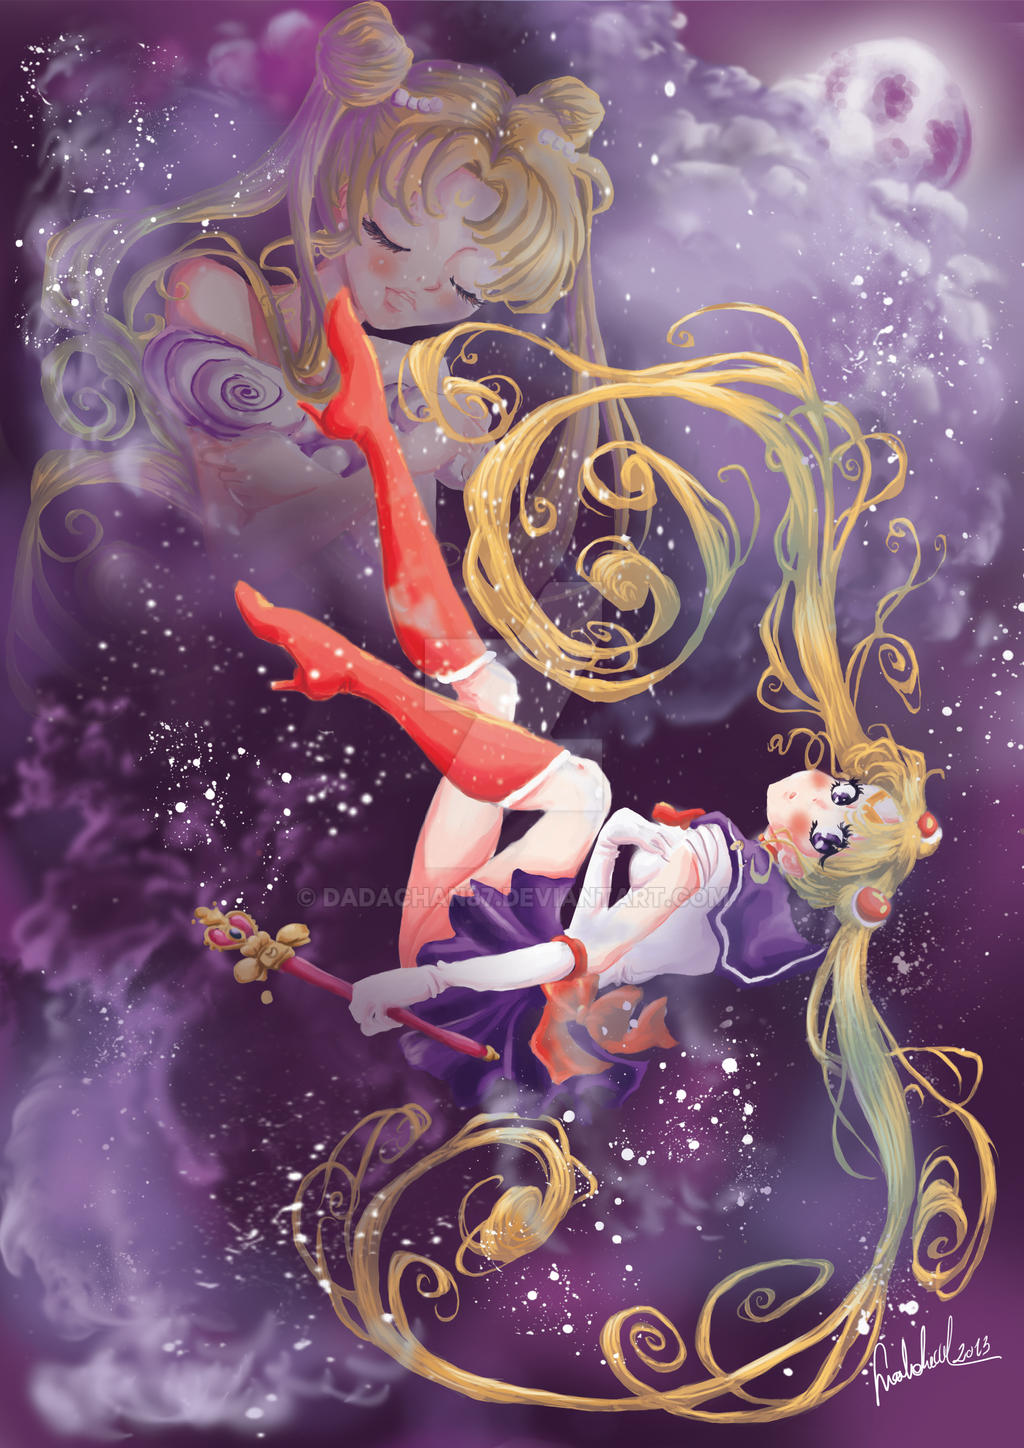 bishoujo senshi sailor moon by dadachan87